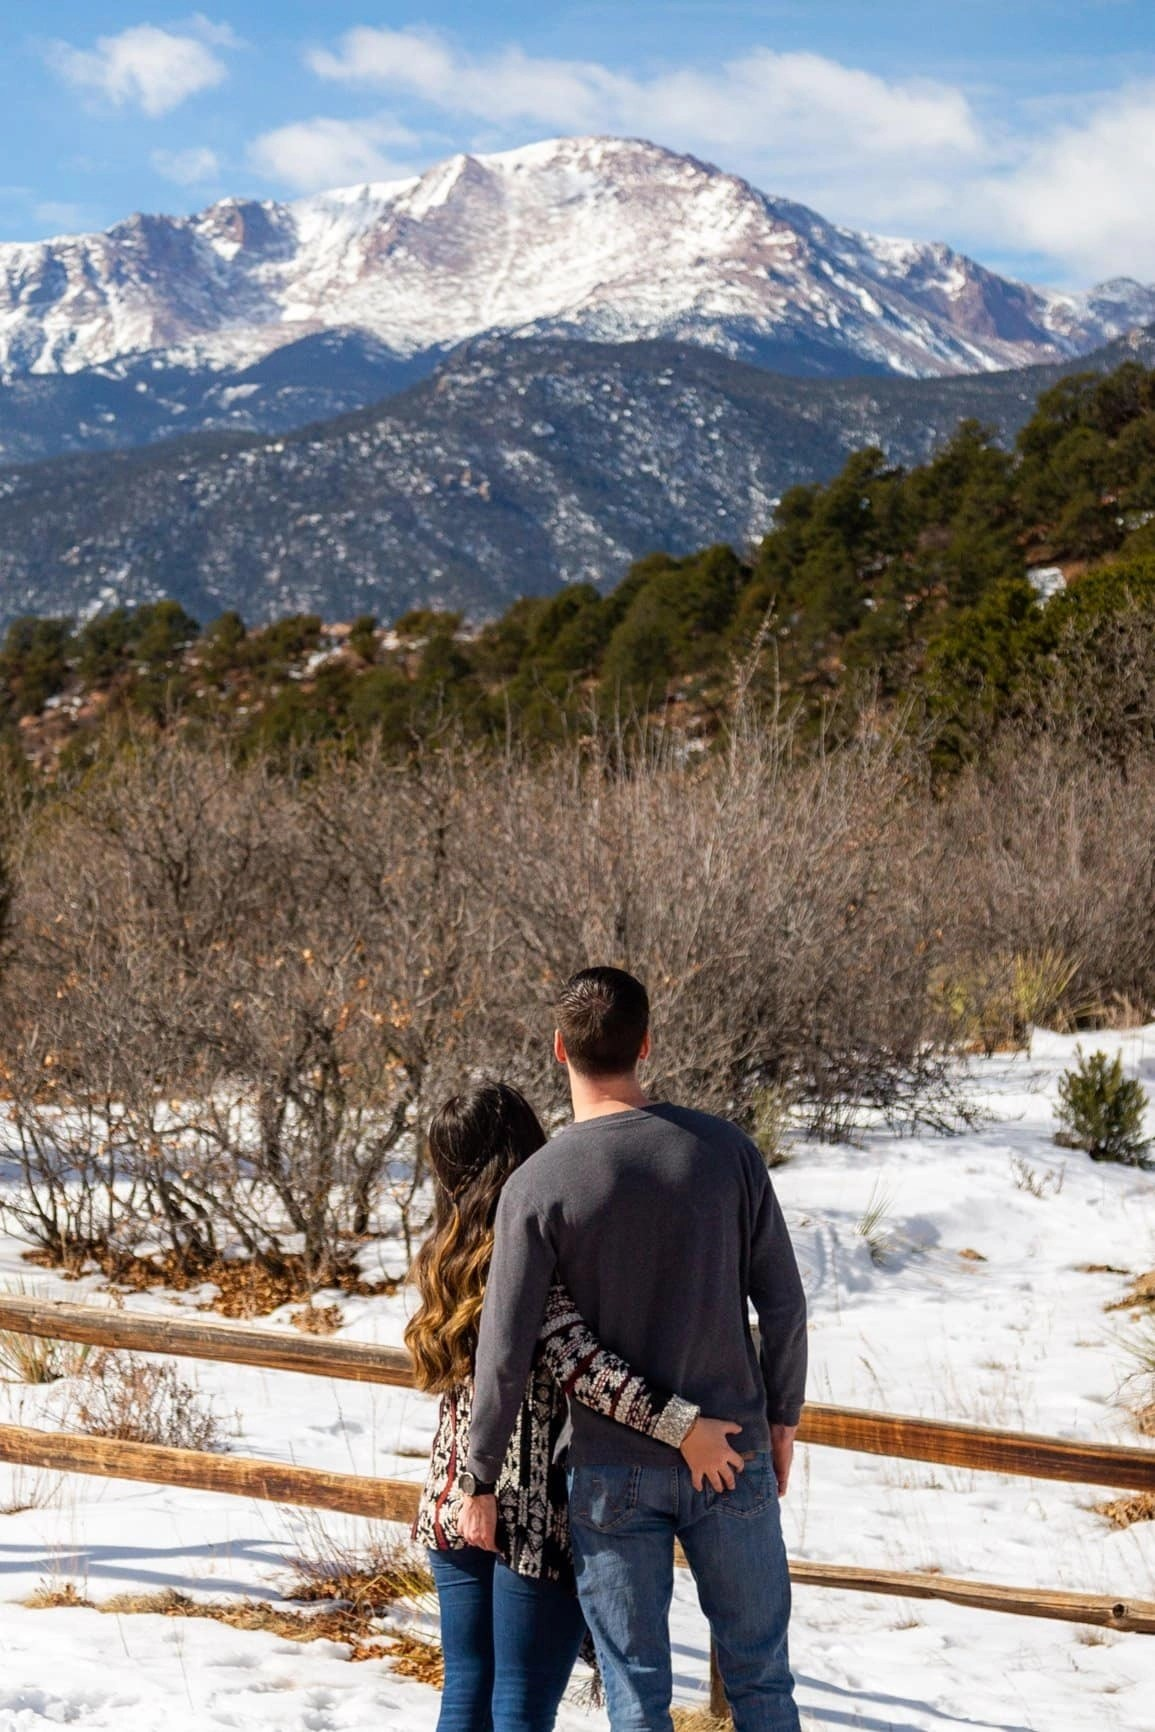 butt grabs while starring off at Pikes Peak in Garden of the Gods park. Adventure sessions are funw hen you get out and explore what nature has to offer and have a little fun along the way